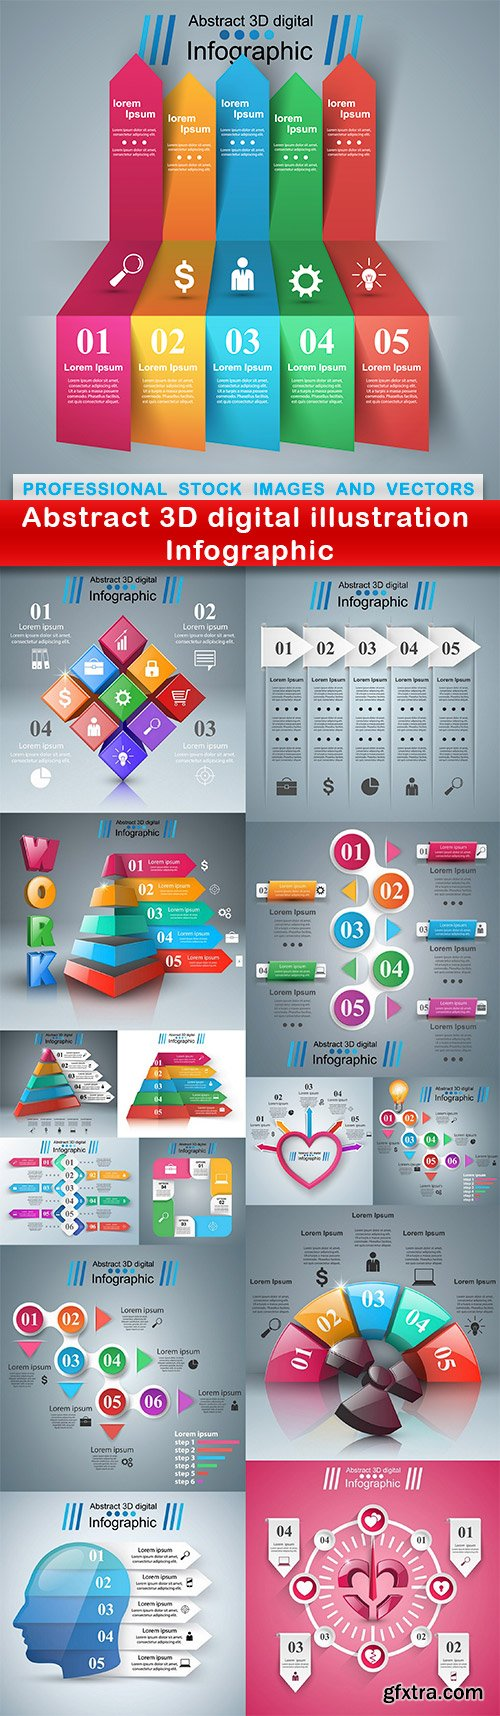 Abstract 3D digital illustration Infographic - 15 EPS